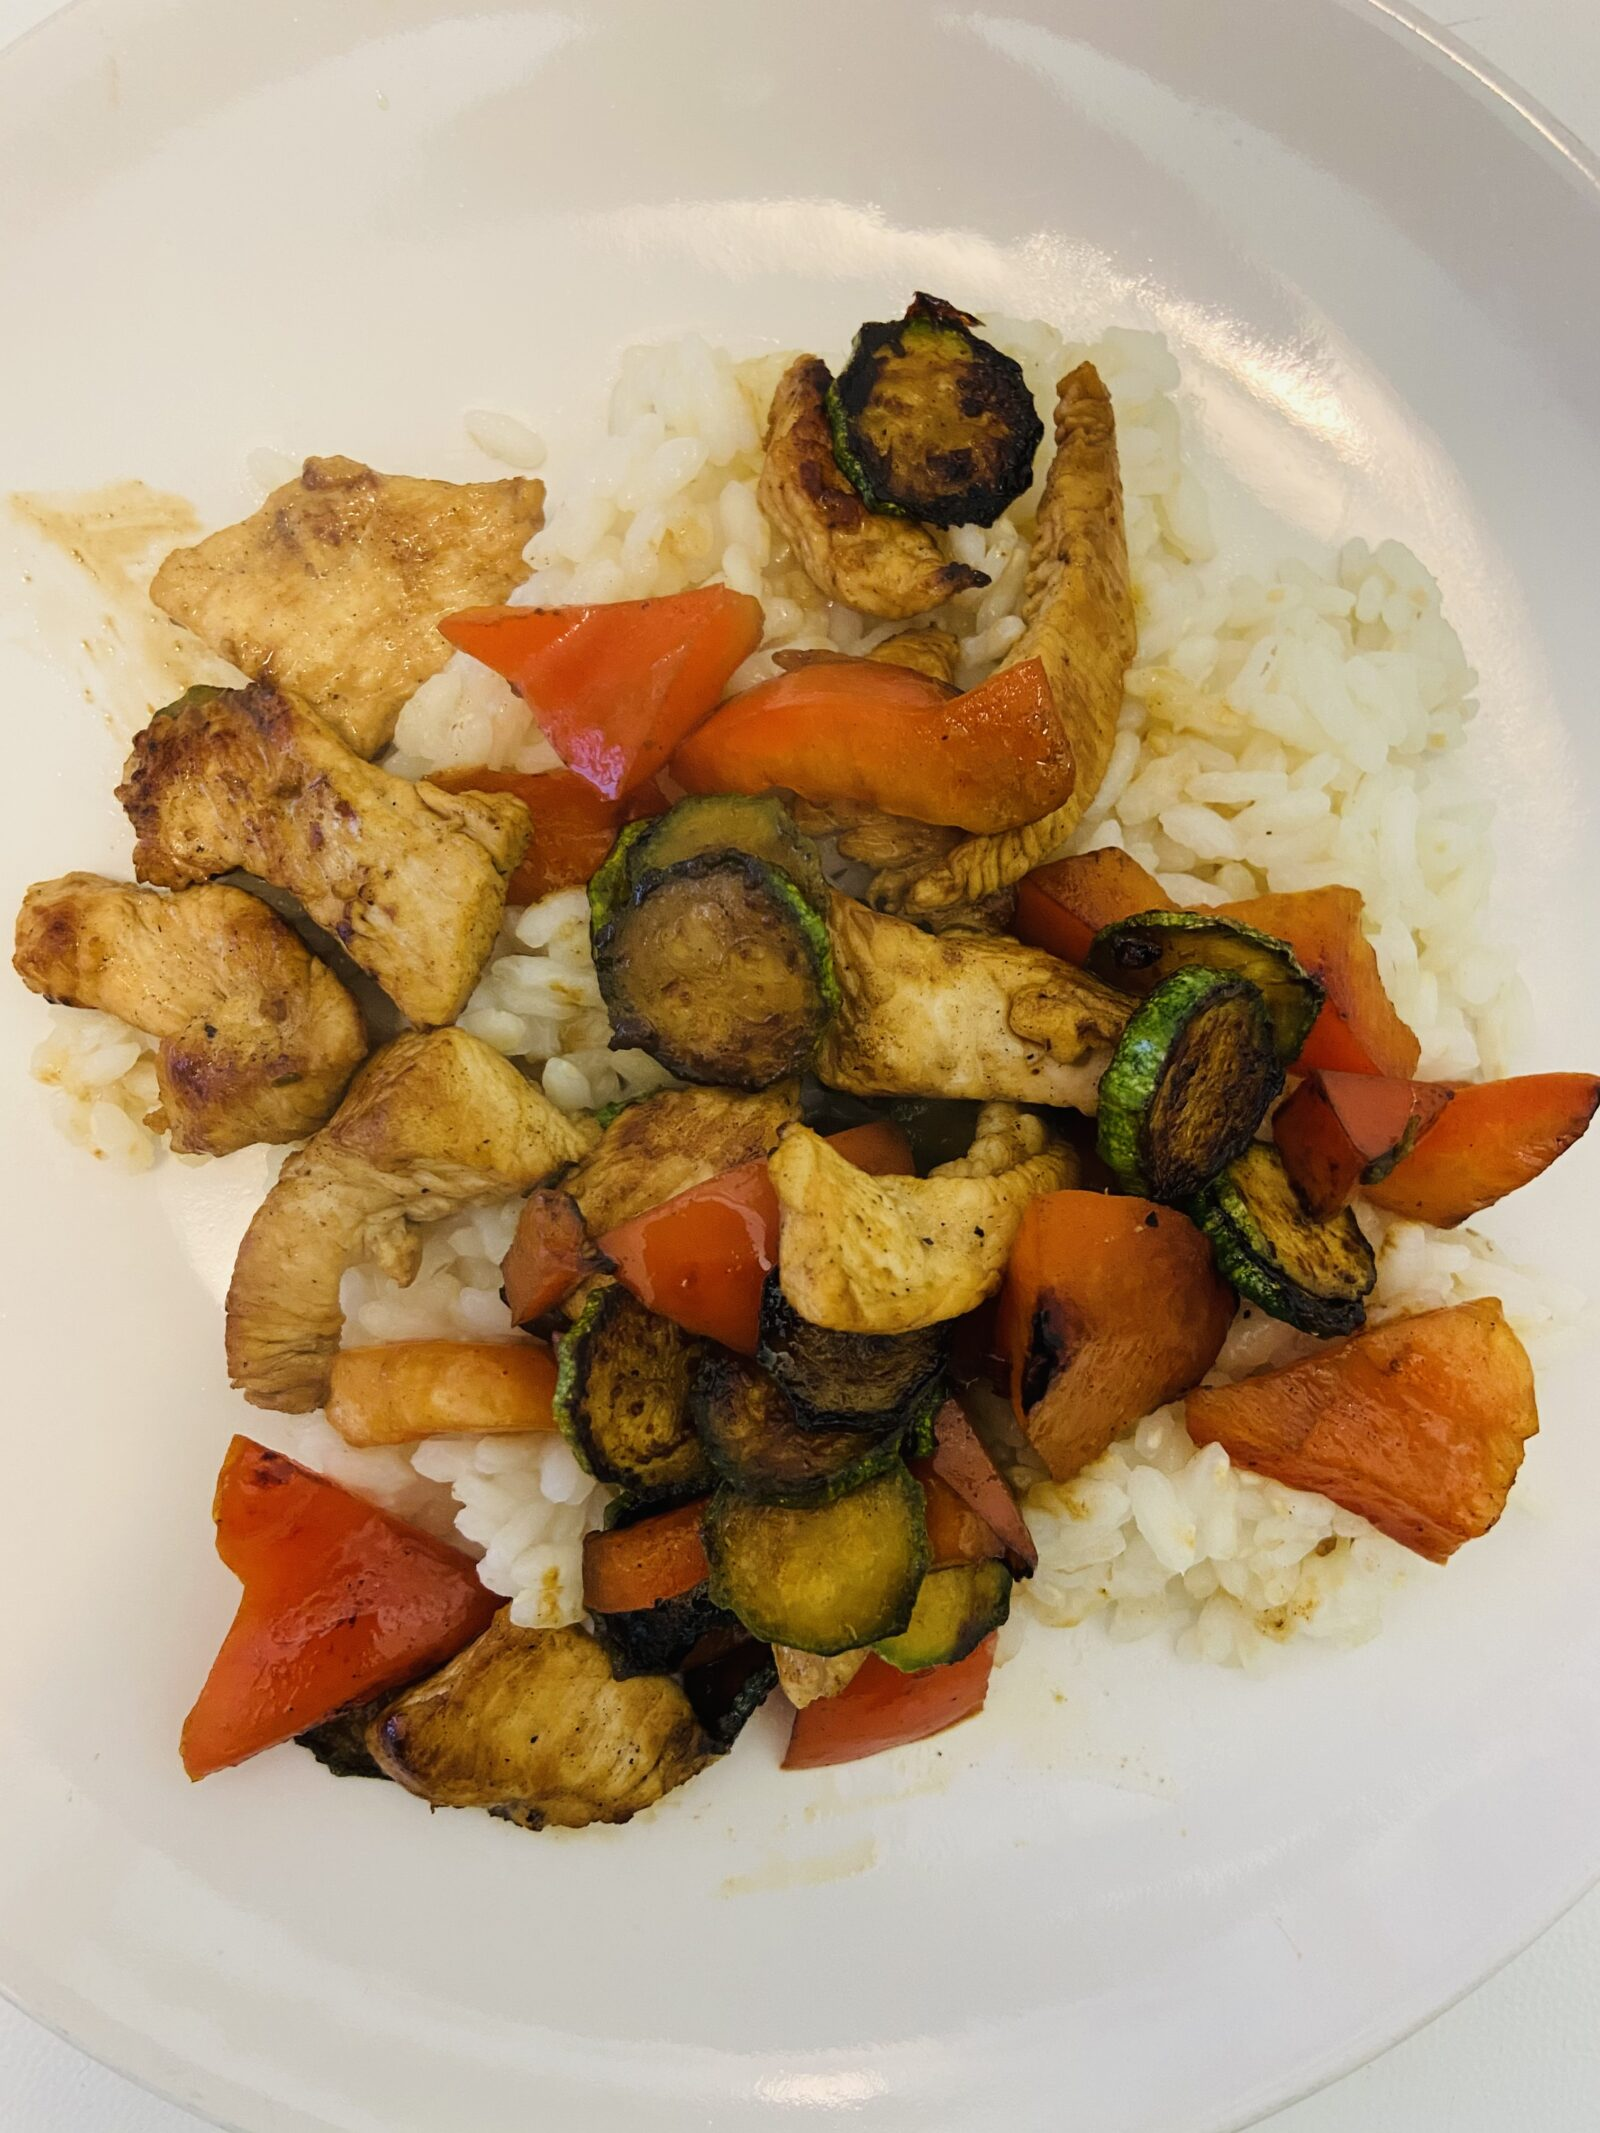 My chicken-vegetable stir fry with the Carnaroli rice I made at home was fabulous.